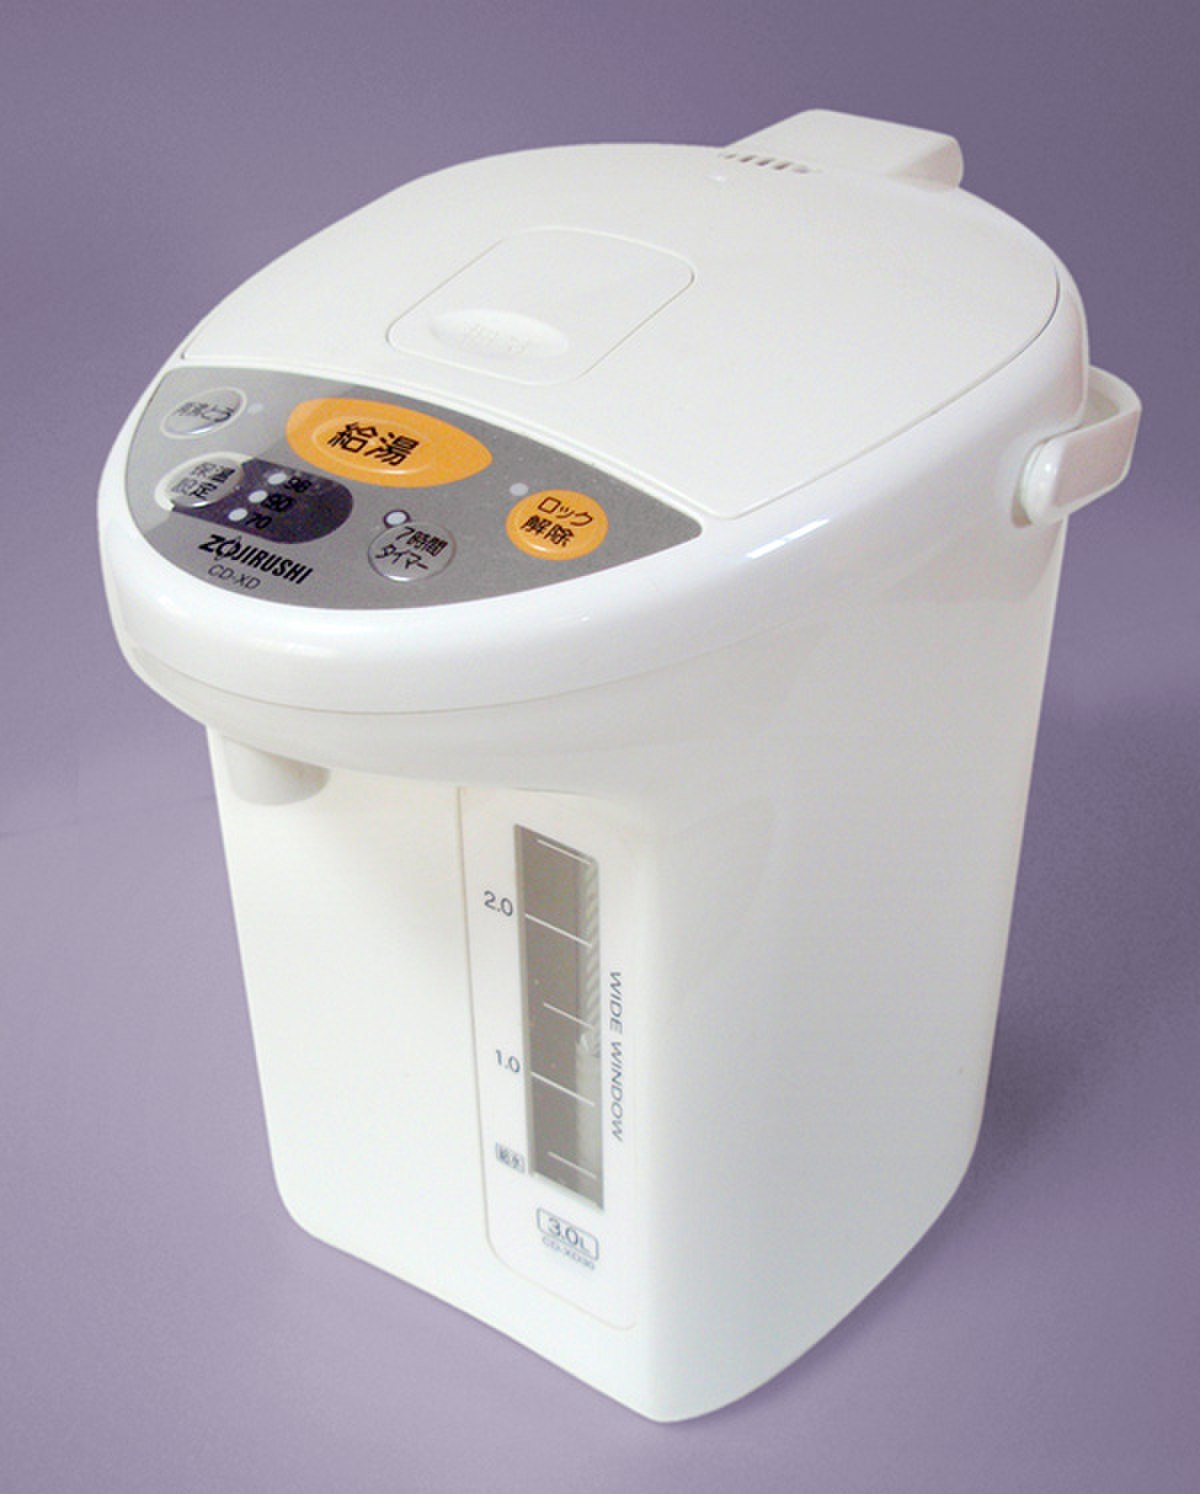 Electric water boiler wikipedia